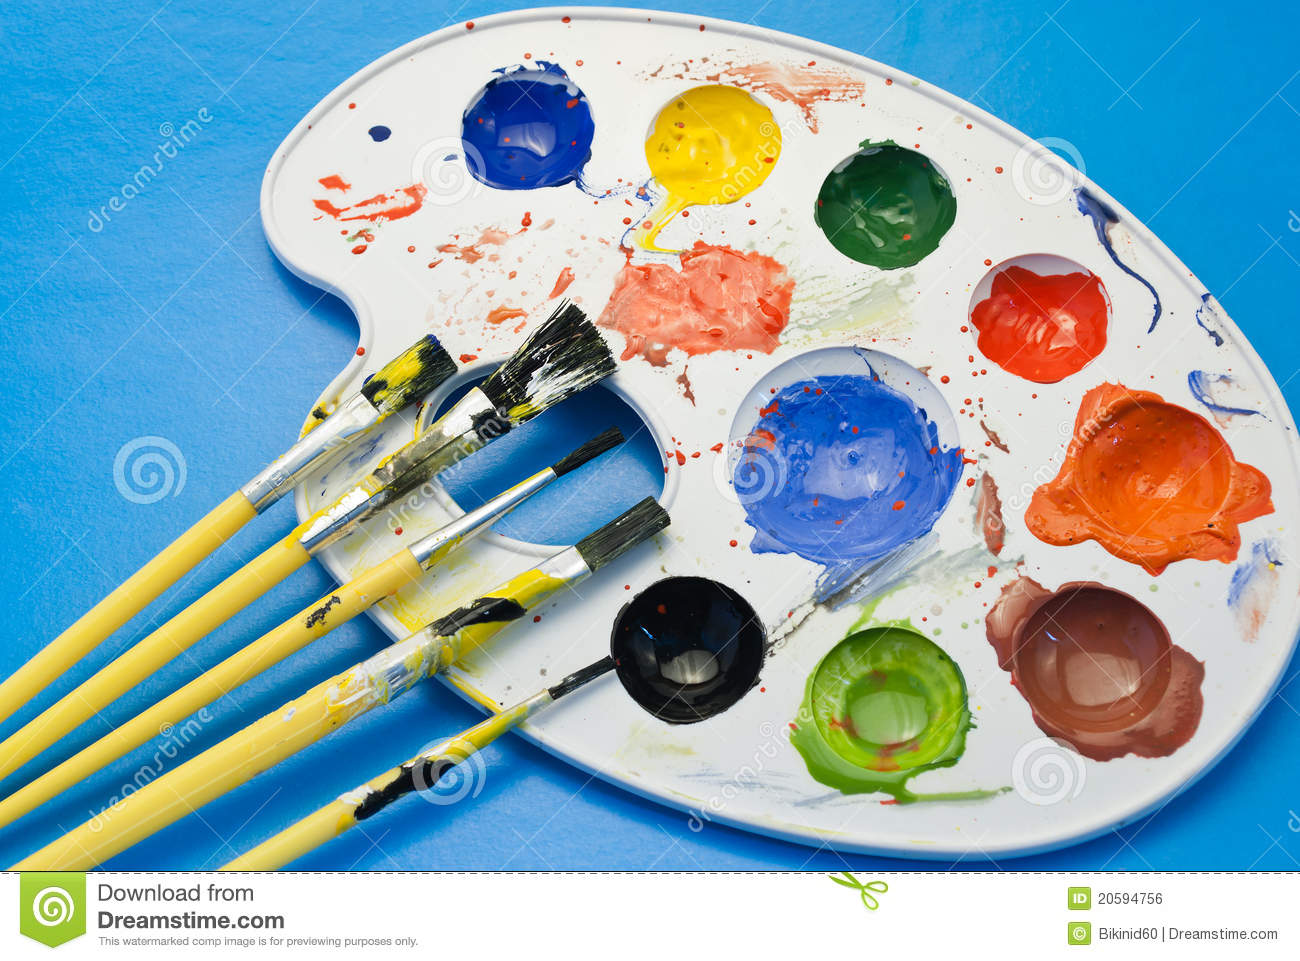 Painting kit stock photo image of variety design education royalty free stock photo download painting kit sciox Images